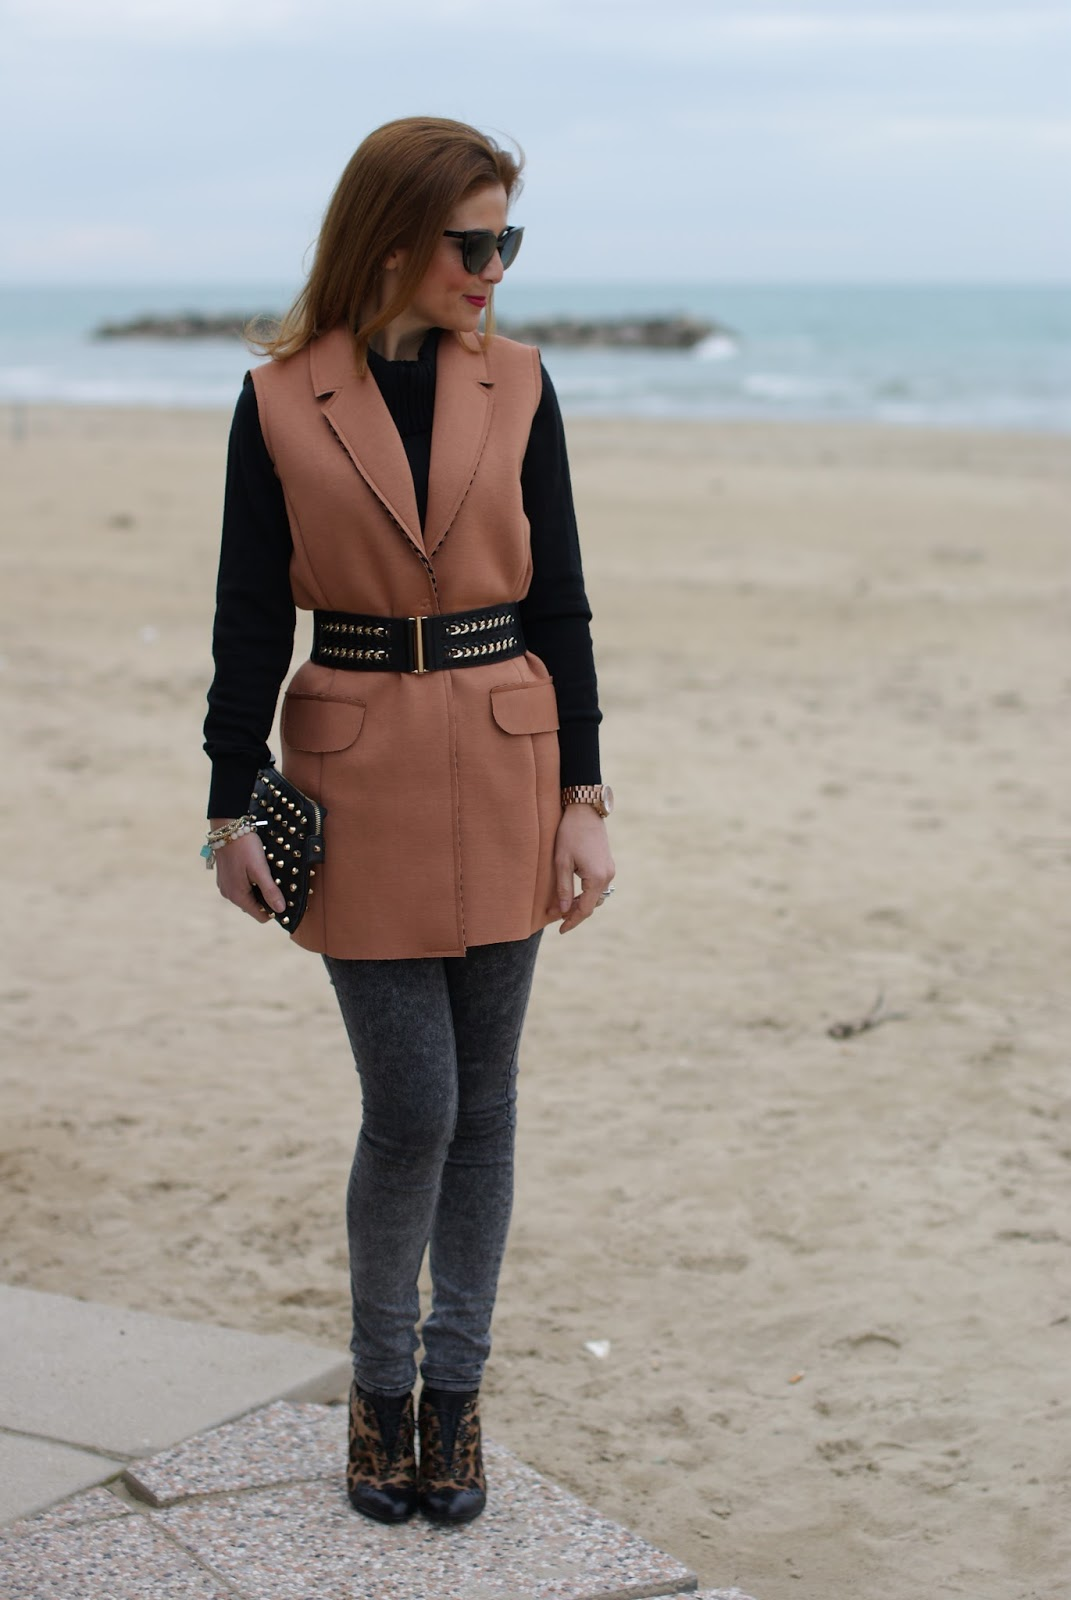 How to spice up a simple outfit with a camel sleeveless jacket on Fashion and Cookies fashion blog, fashion blogger style